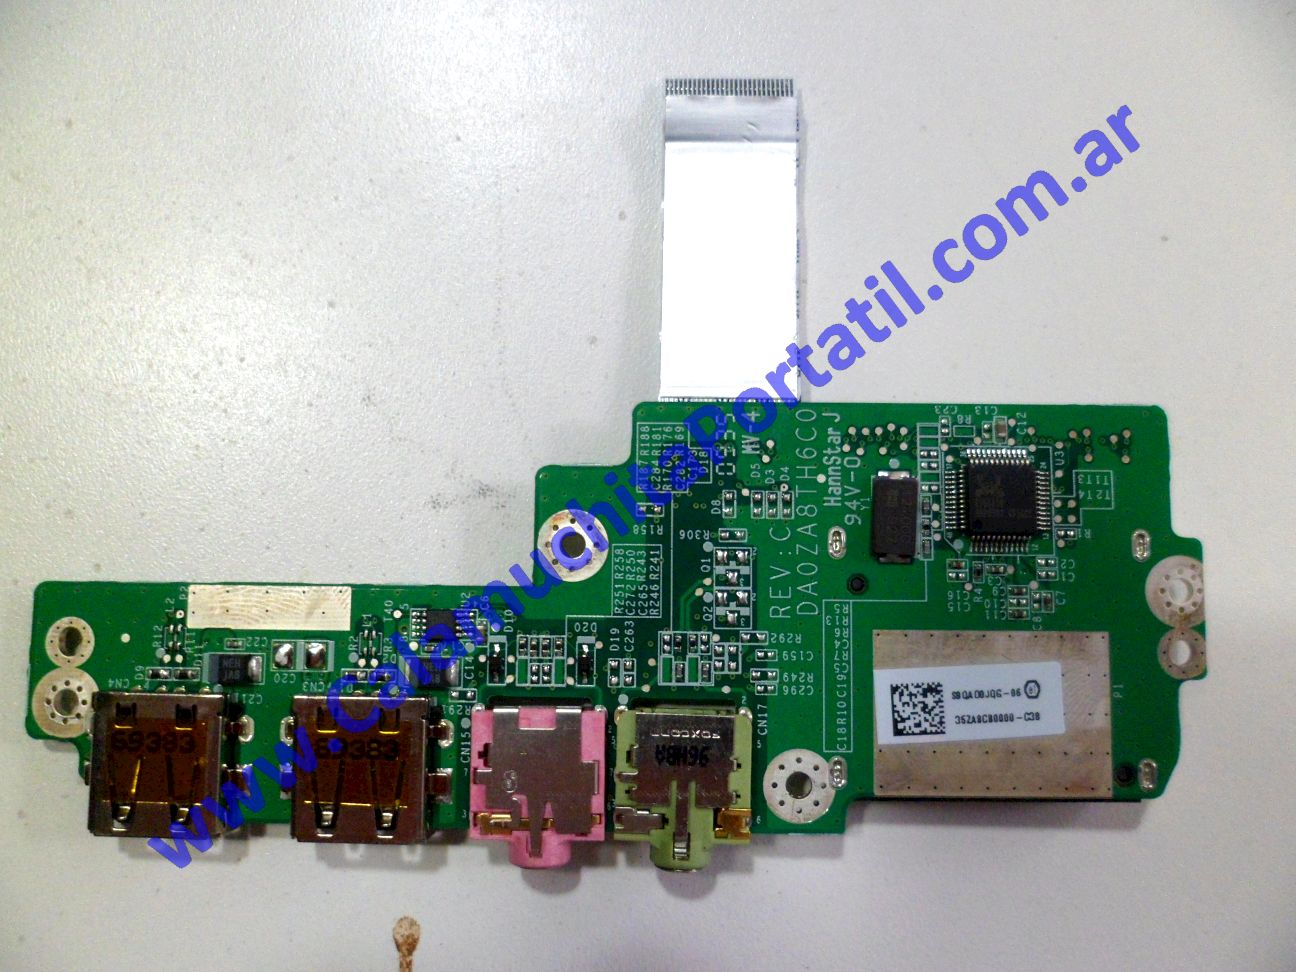 0011PUS Placa USB Packard Bell Dot-M-A / ZA8